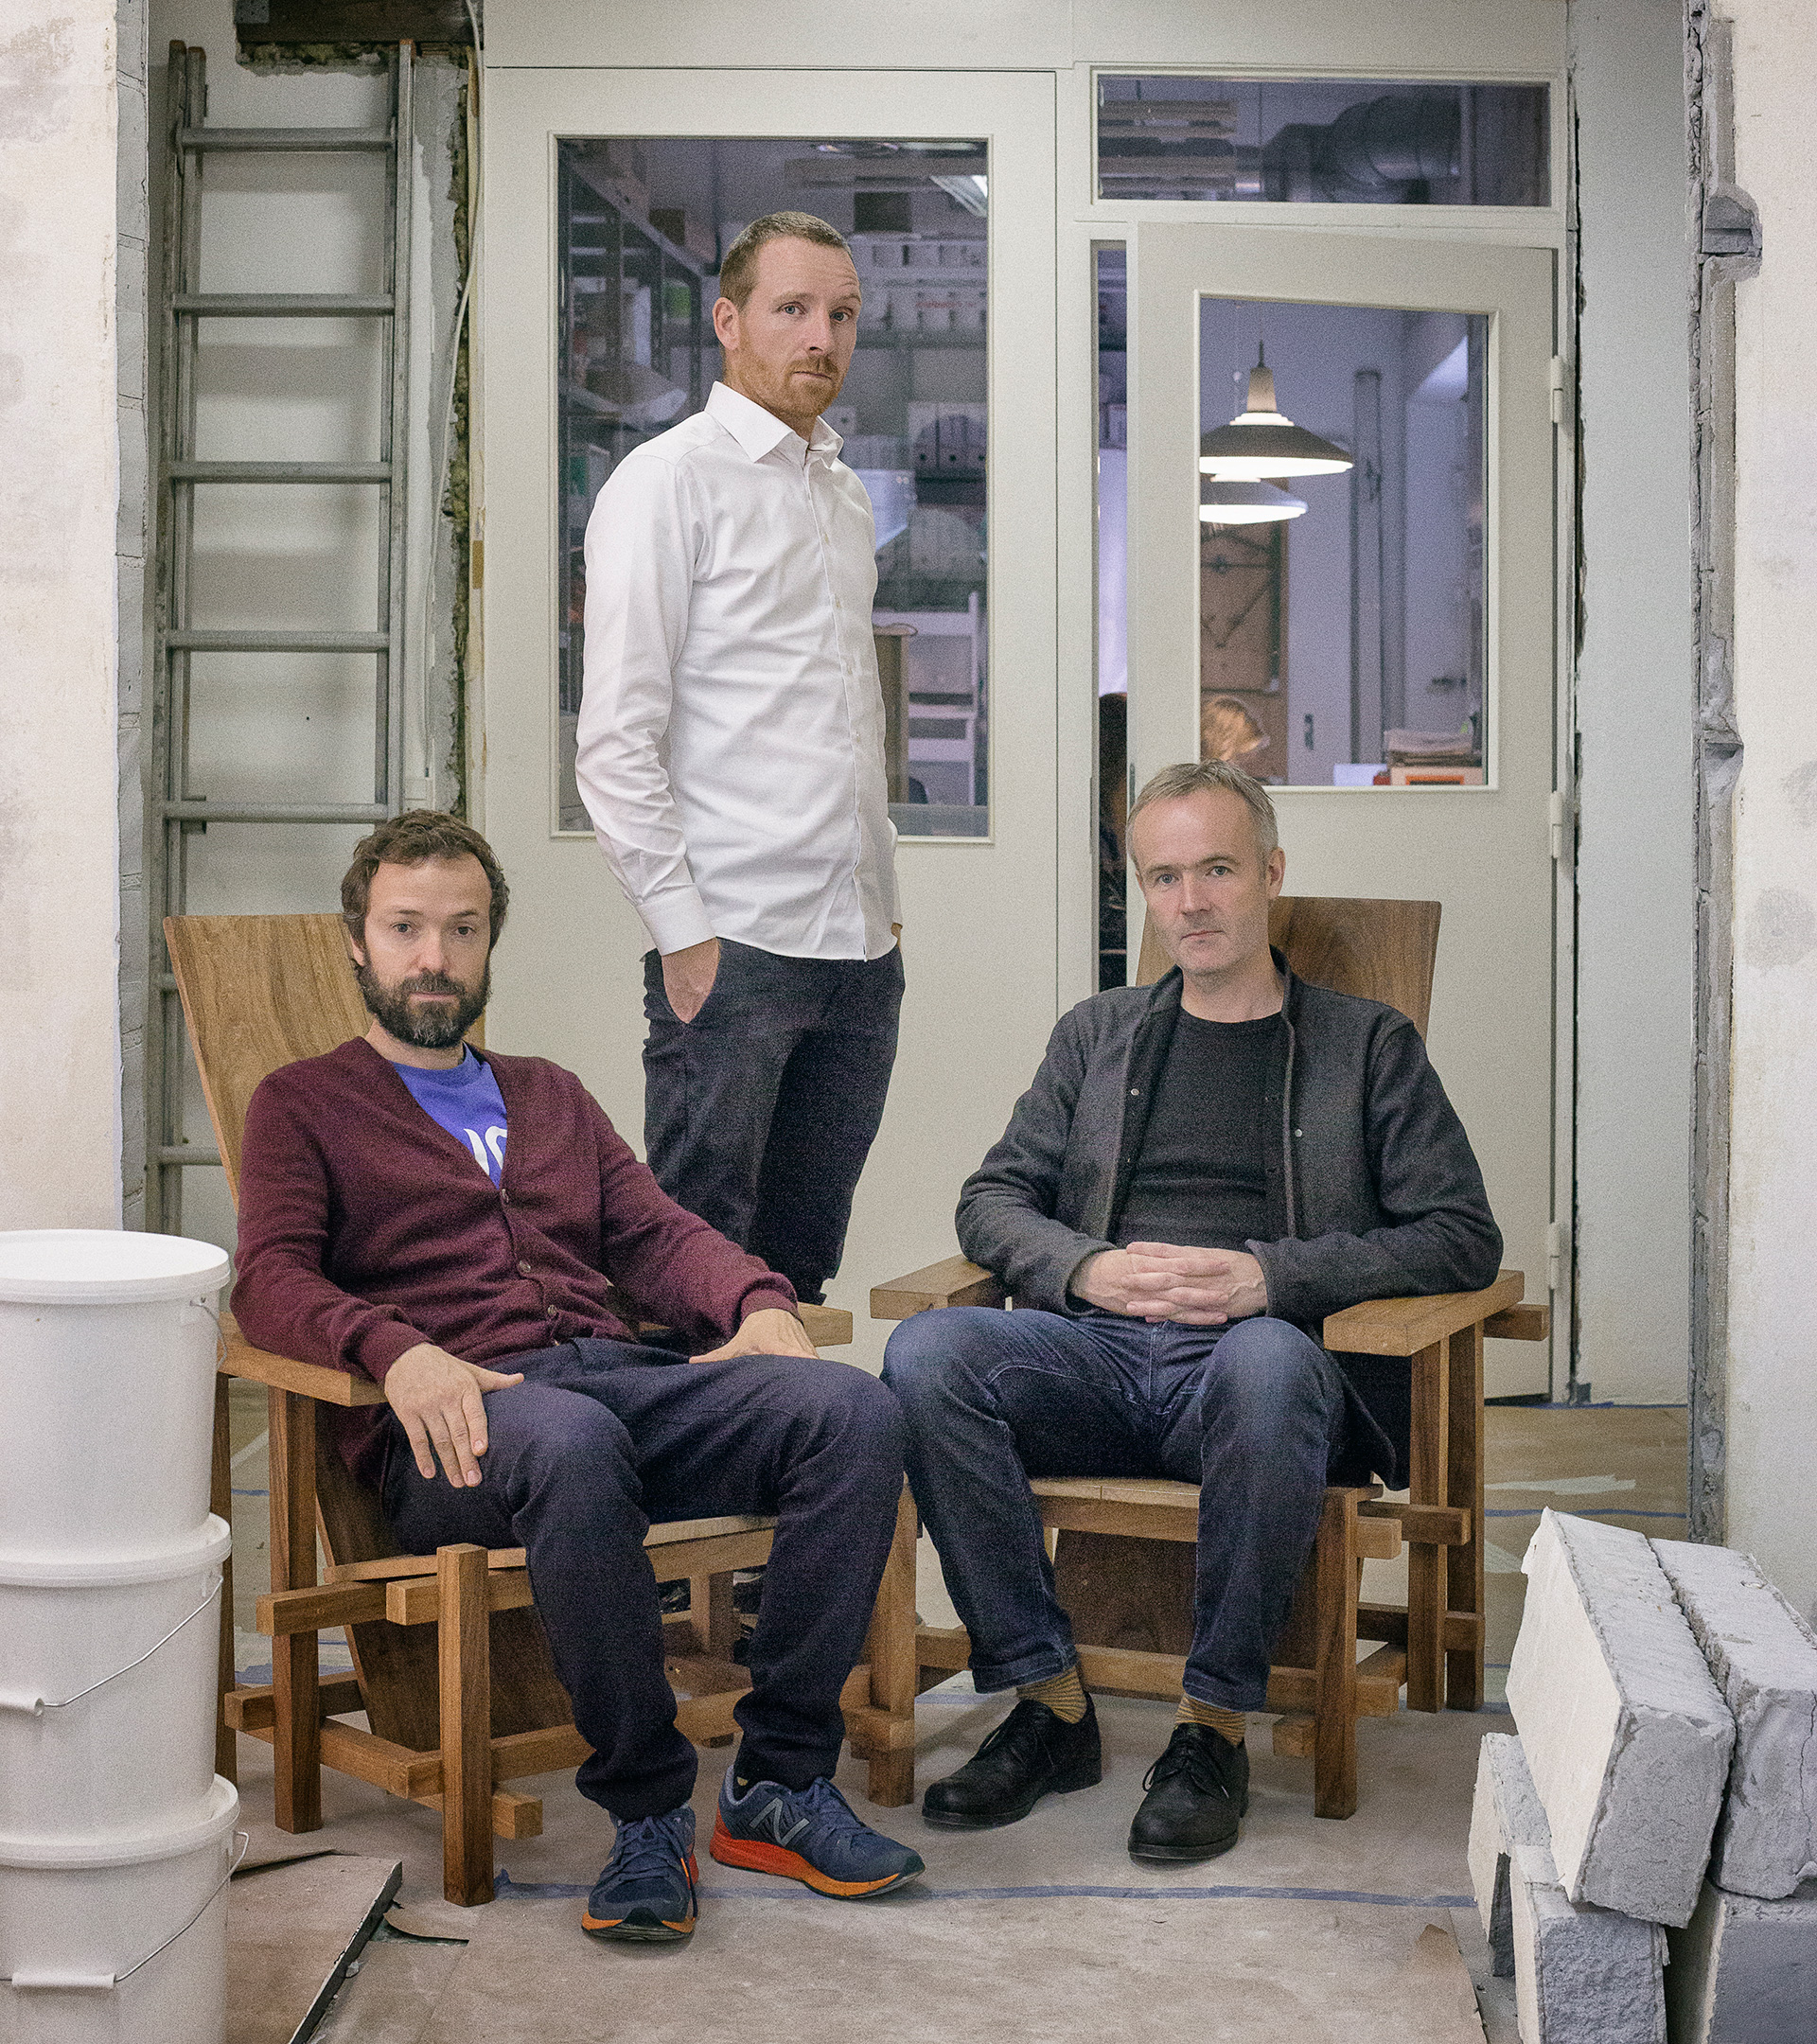 The SUPERFLEX team comprising Jakob Fenger, Bjørnstjerne Christiansen and Rasmus Nielsen at their office in Copenhagen | It is not the end of the world | SUPERFLEX | STIRworld